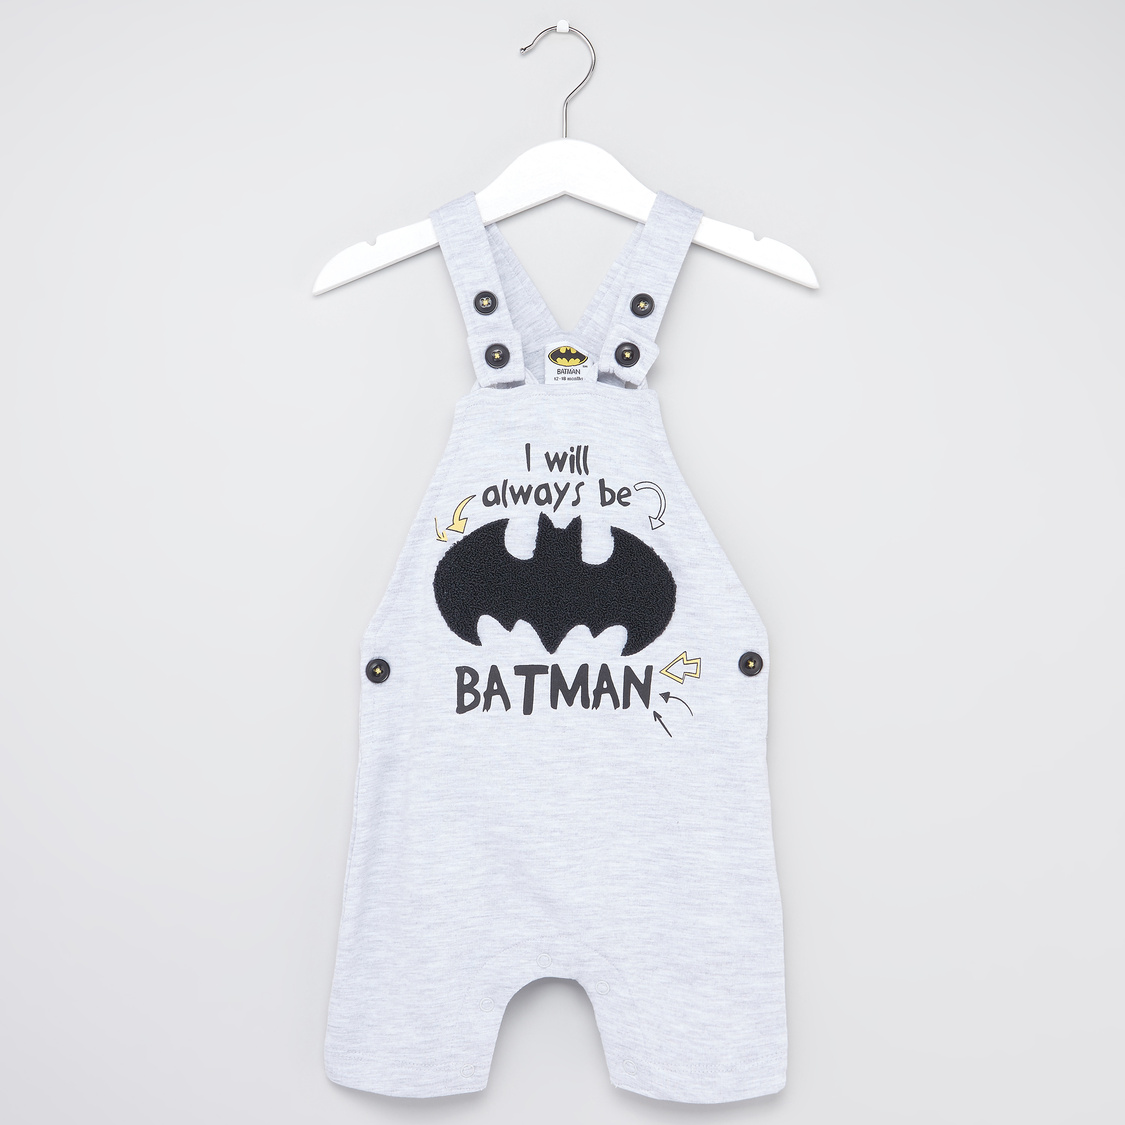 Batman Print Round Neck T-shirt and Dungaree Set